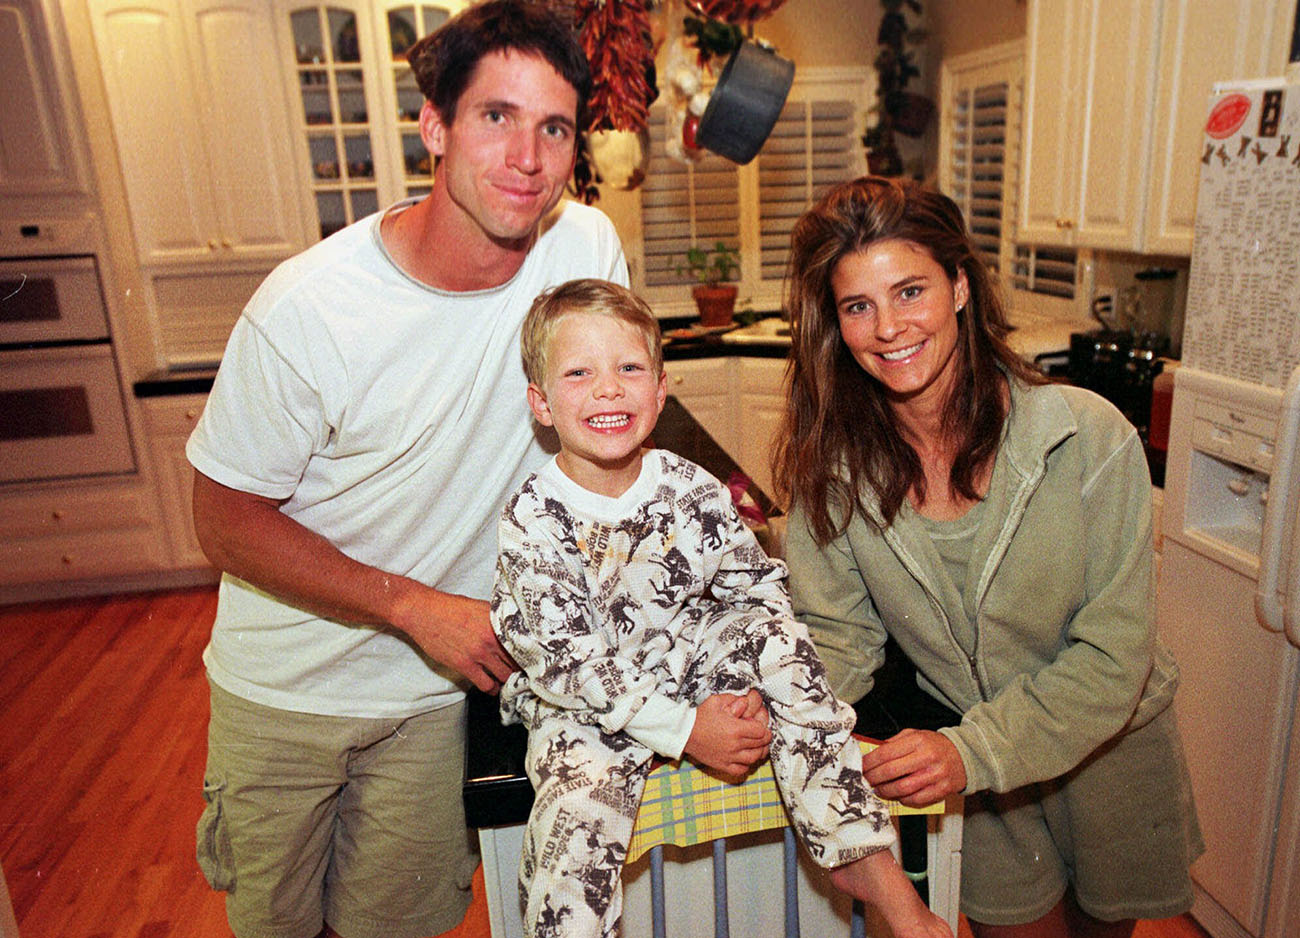 A 5-year-old Christian with mom and dad in 2000.